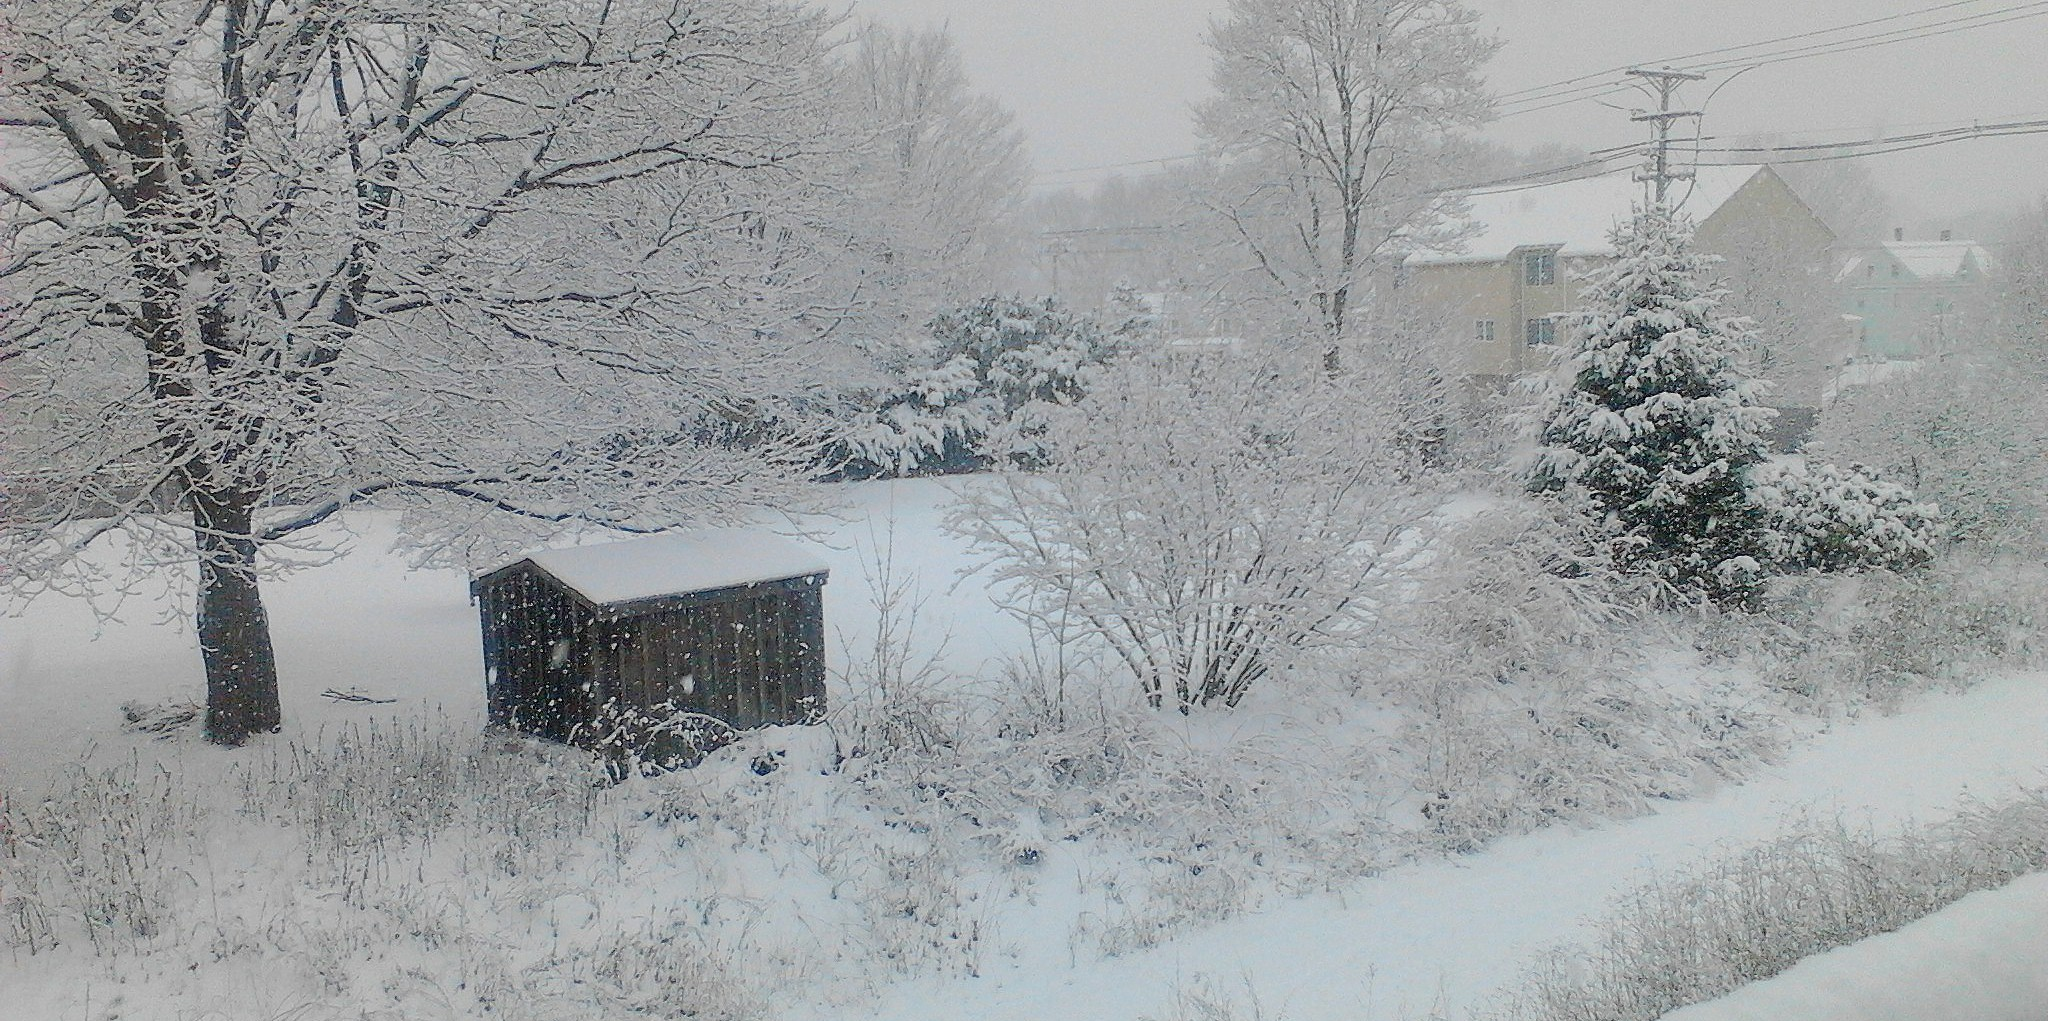 Snow on a rustic shed, Photo by Anja